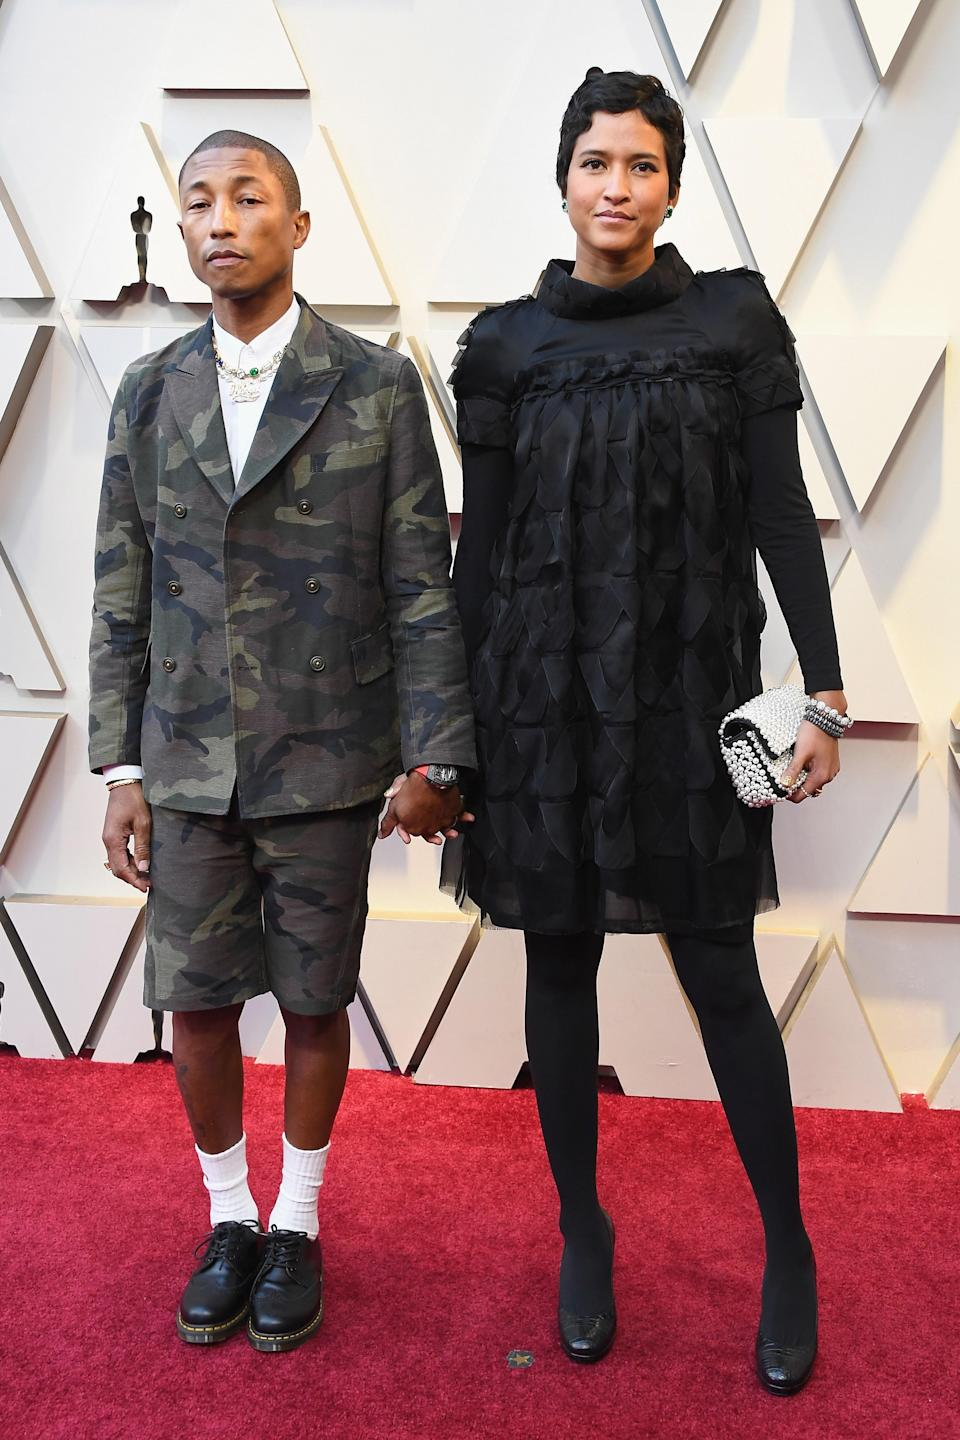 Pharrell Williams in Jacob & Co. jewelry and Helen Lasichanh